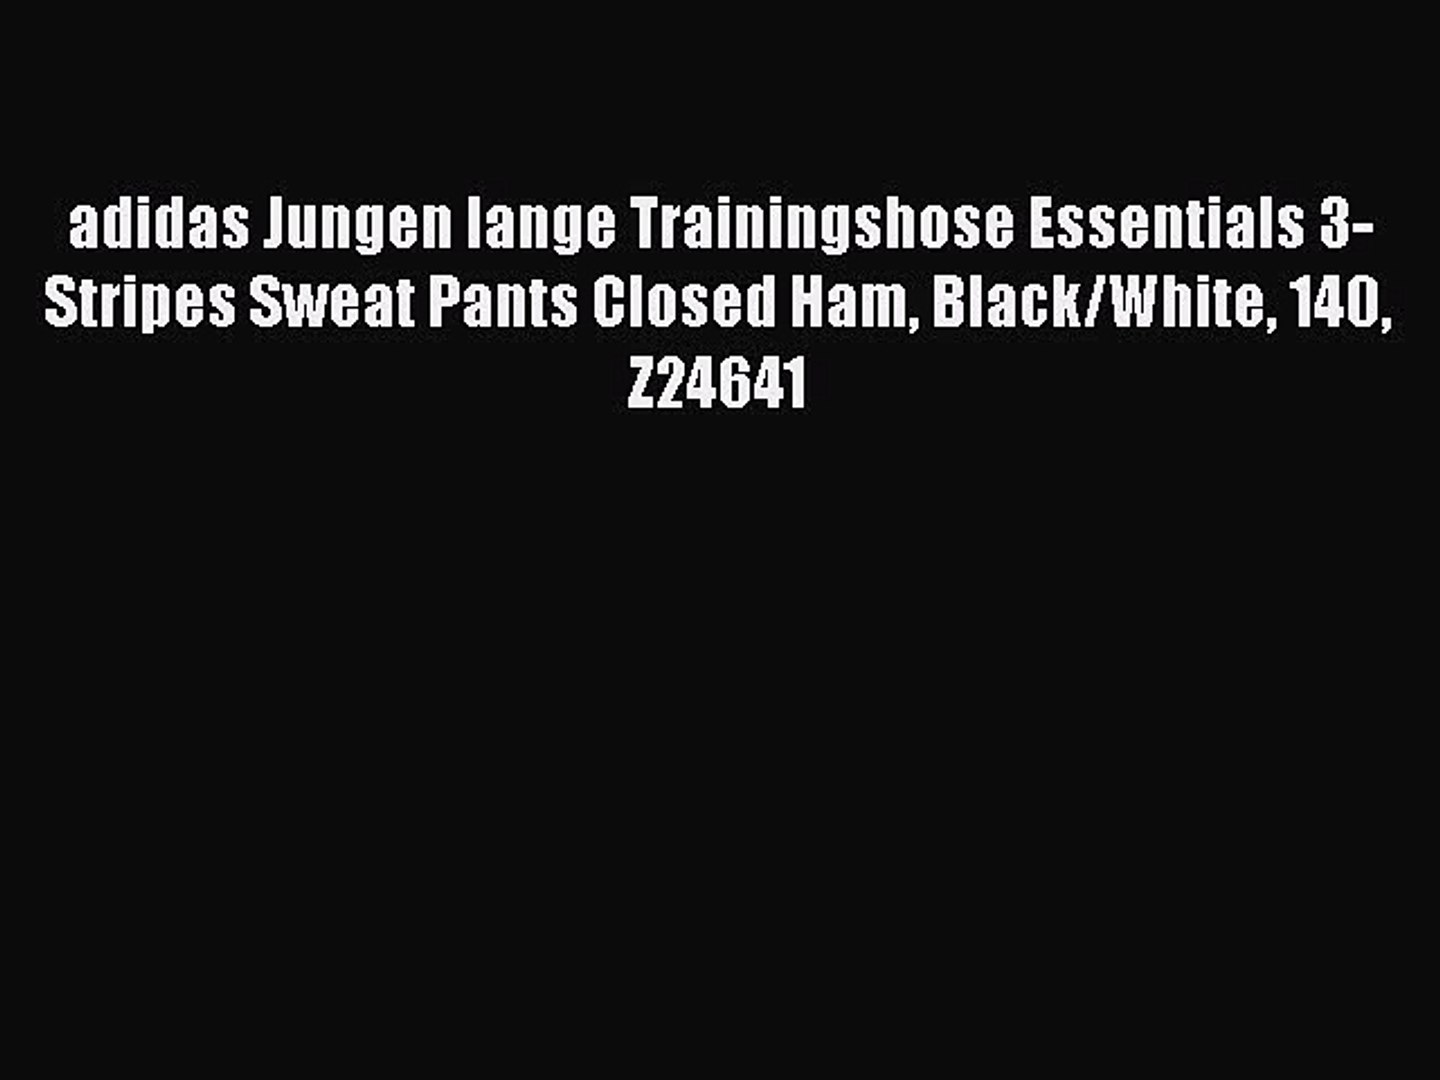 adidas Jungen lange Trainingshose Essentials 3 Stripes Sweat Pants Closed Ham BlackWhite 140